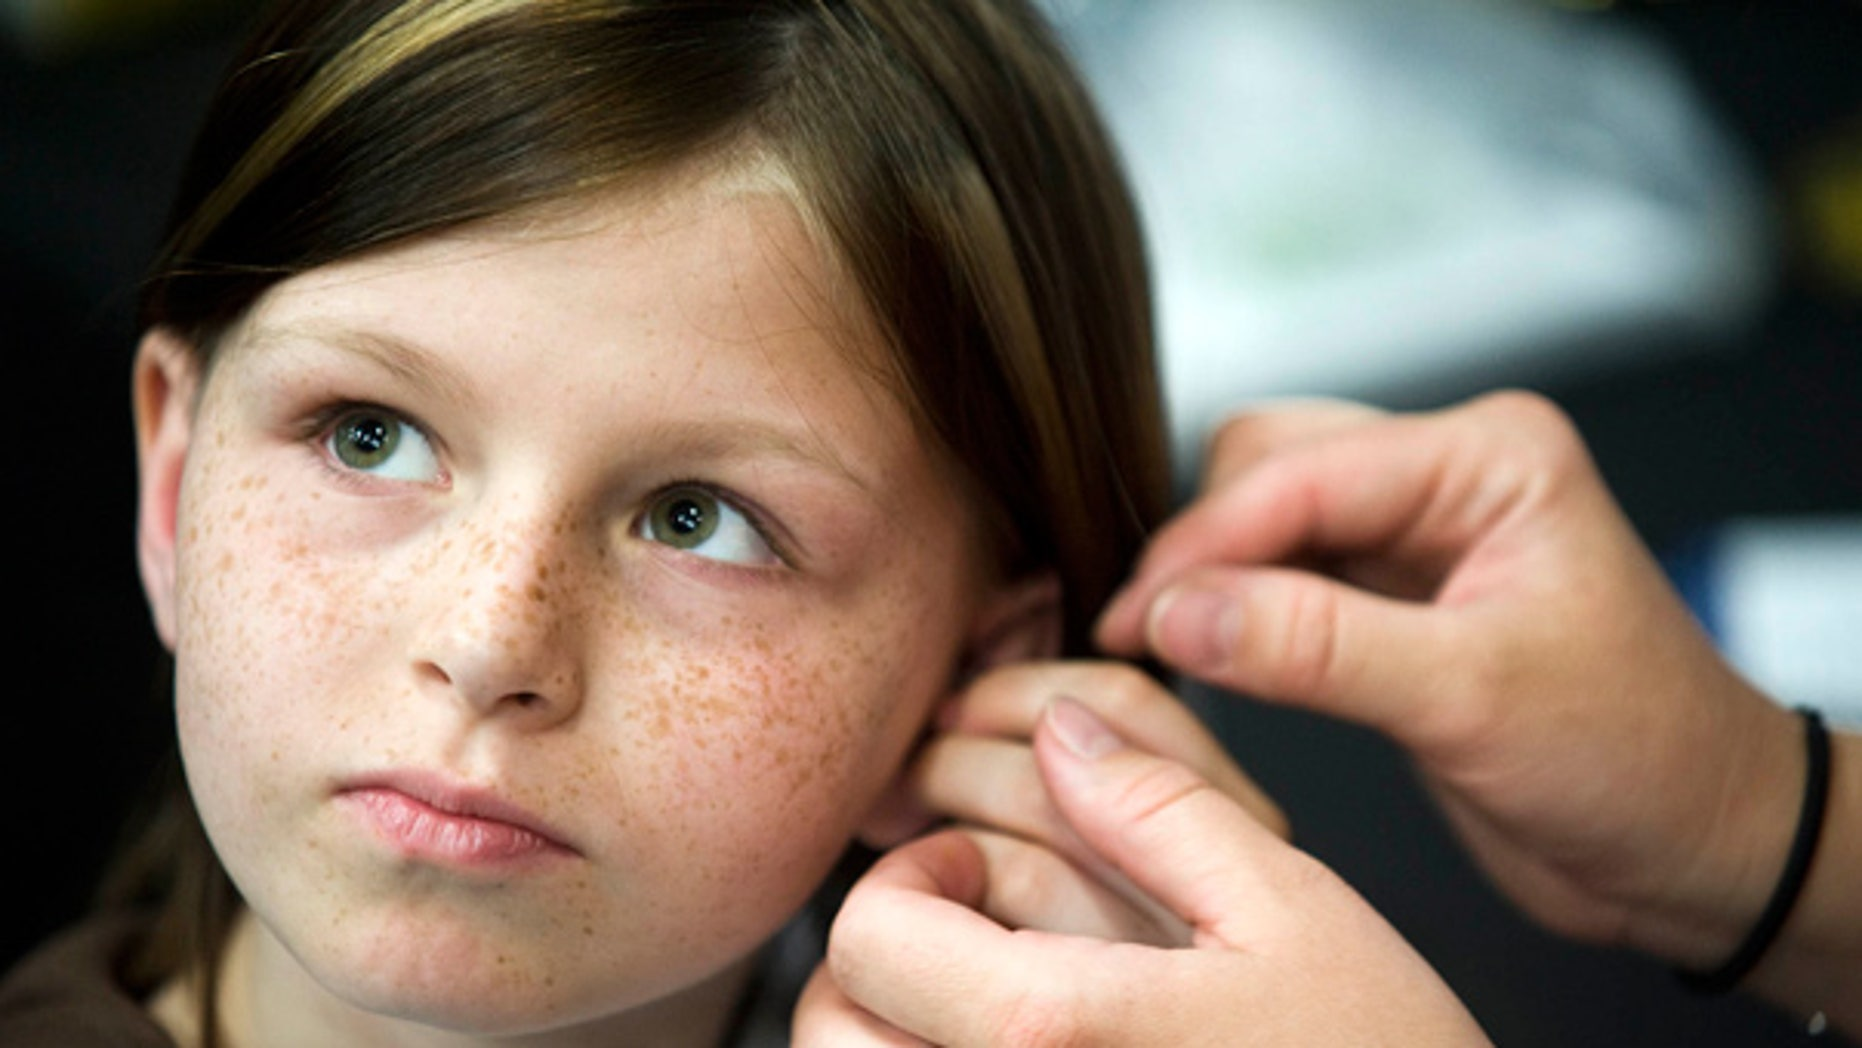 This May 2010 photo shows Zahra Baker, 10, getting a hearing aid at an event at Charlotte Motor Speedway.